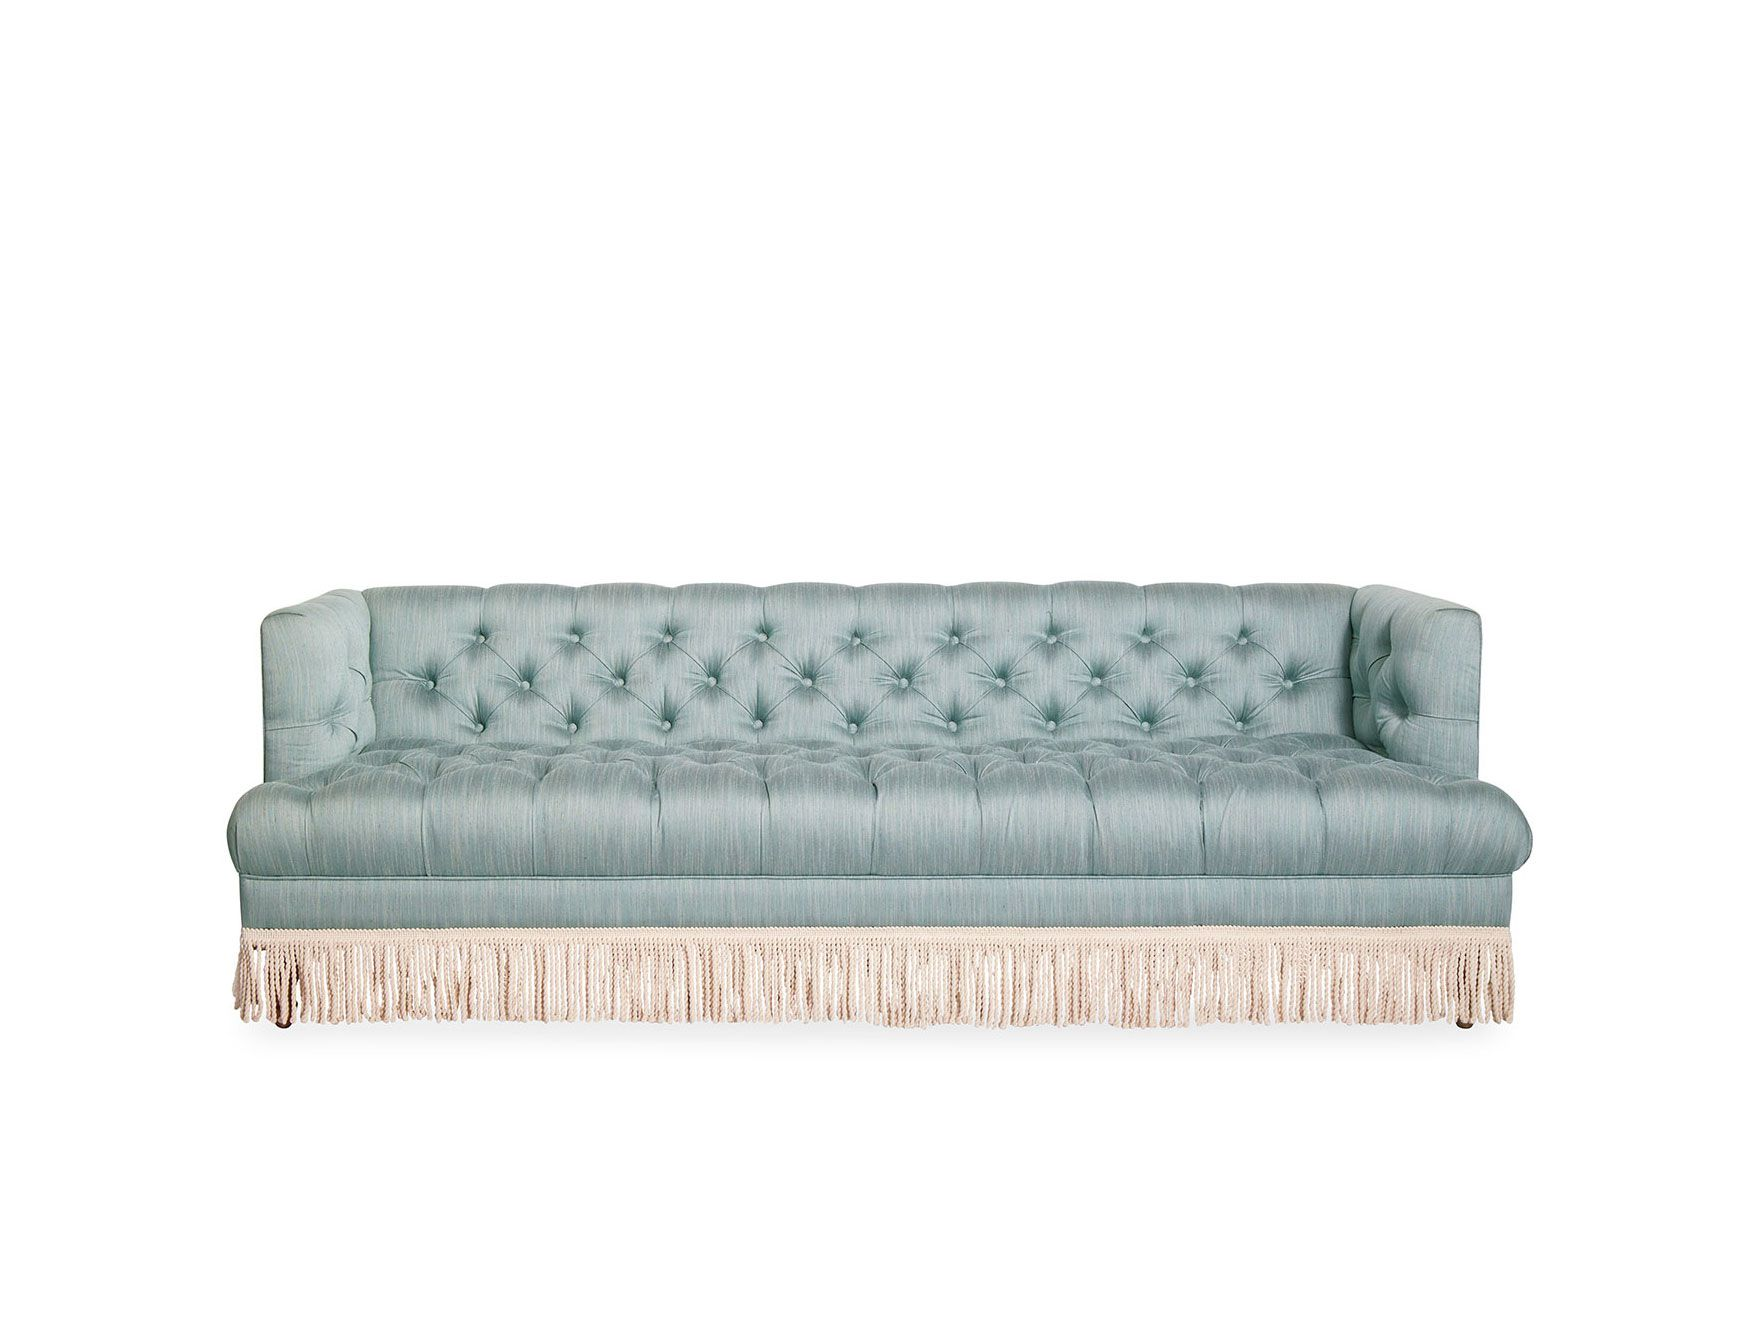 The Coolest Chesterfield Sofas To Shop